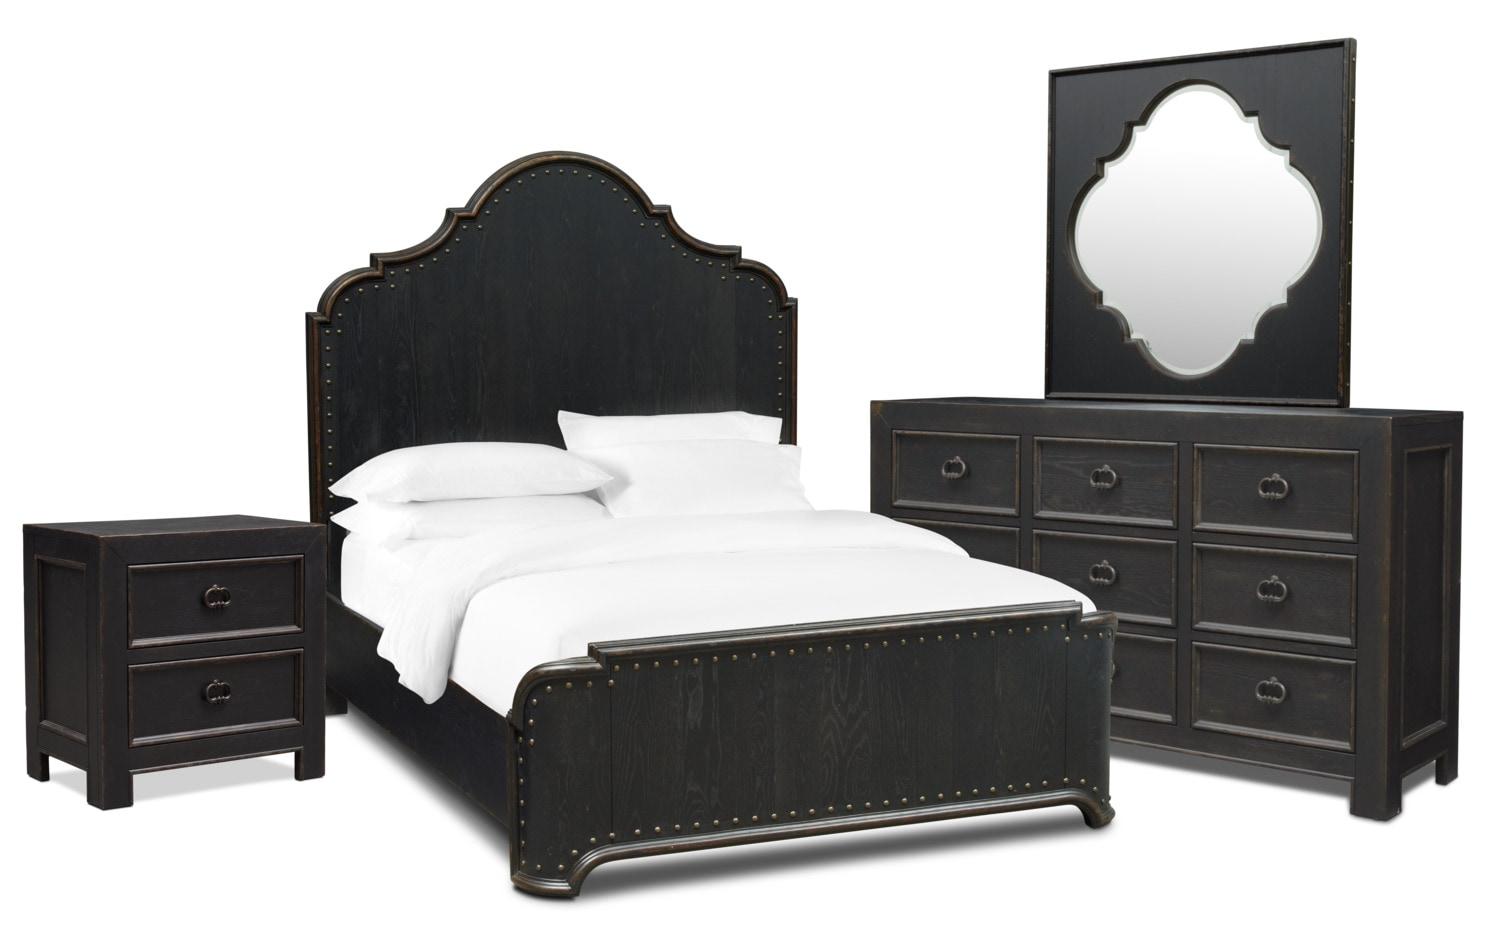 Lennon 6-Piece Bedroom Set with Nightstand, Dresser and Mirror ...